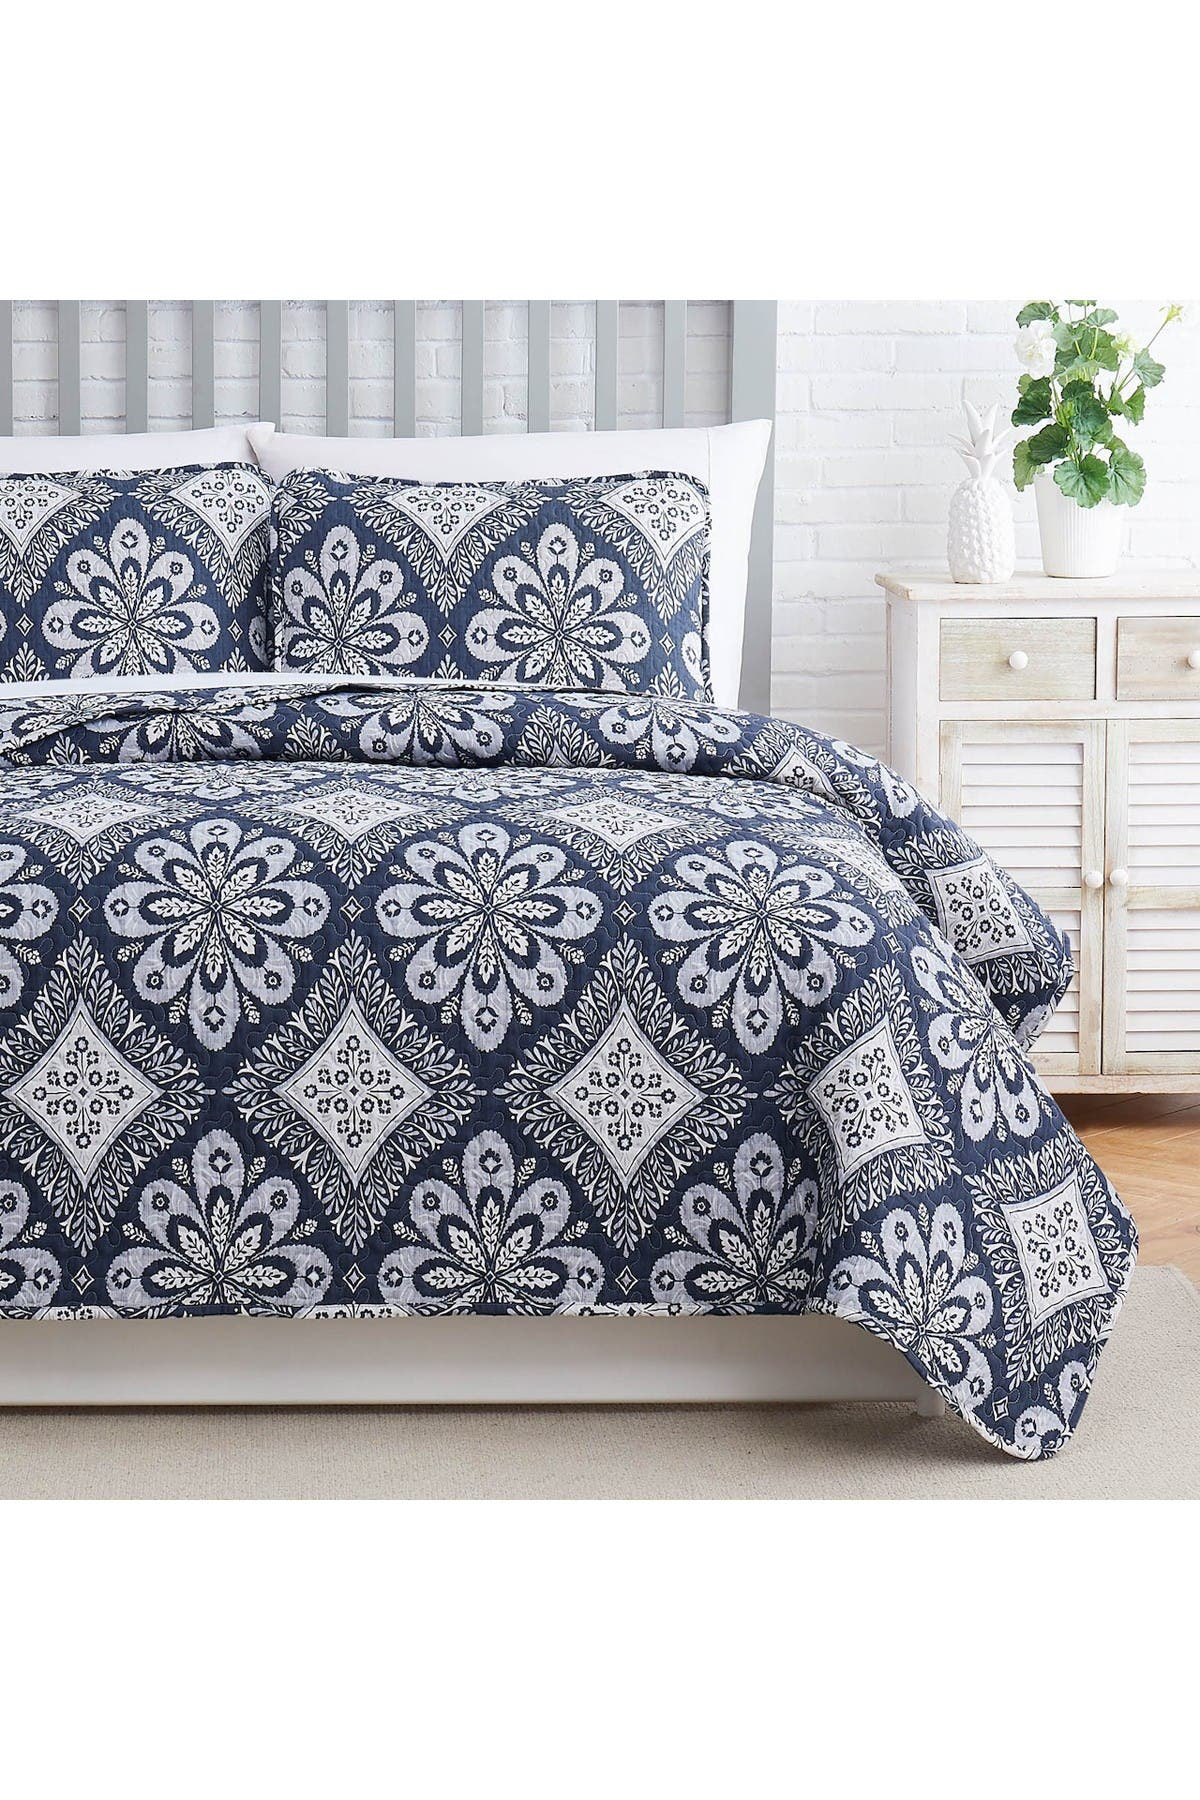 Image of SOUTHSHORE FINE LINENS Tranquility Oversized Quilt Cover Set - Silver Grey - Full/Queen